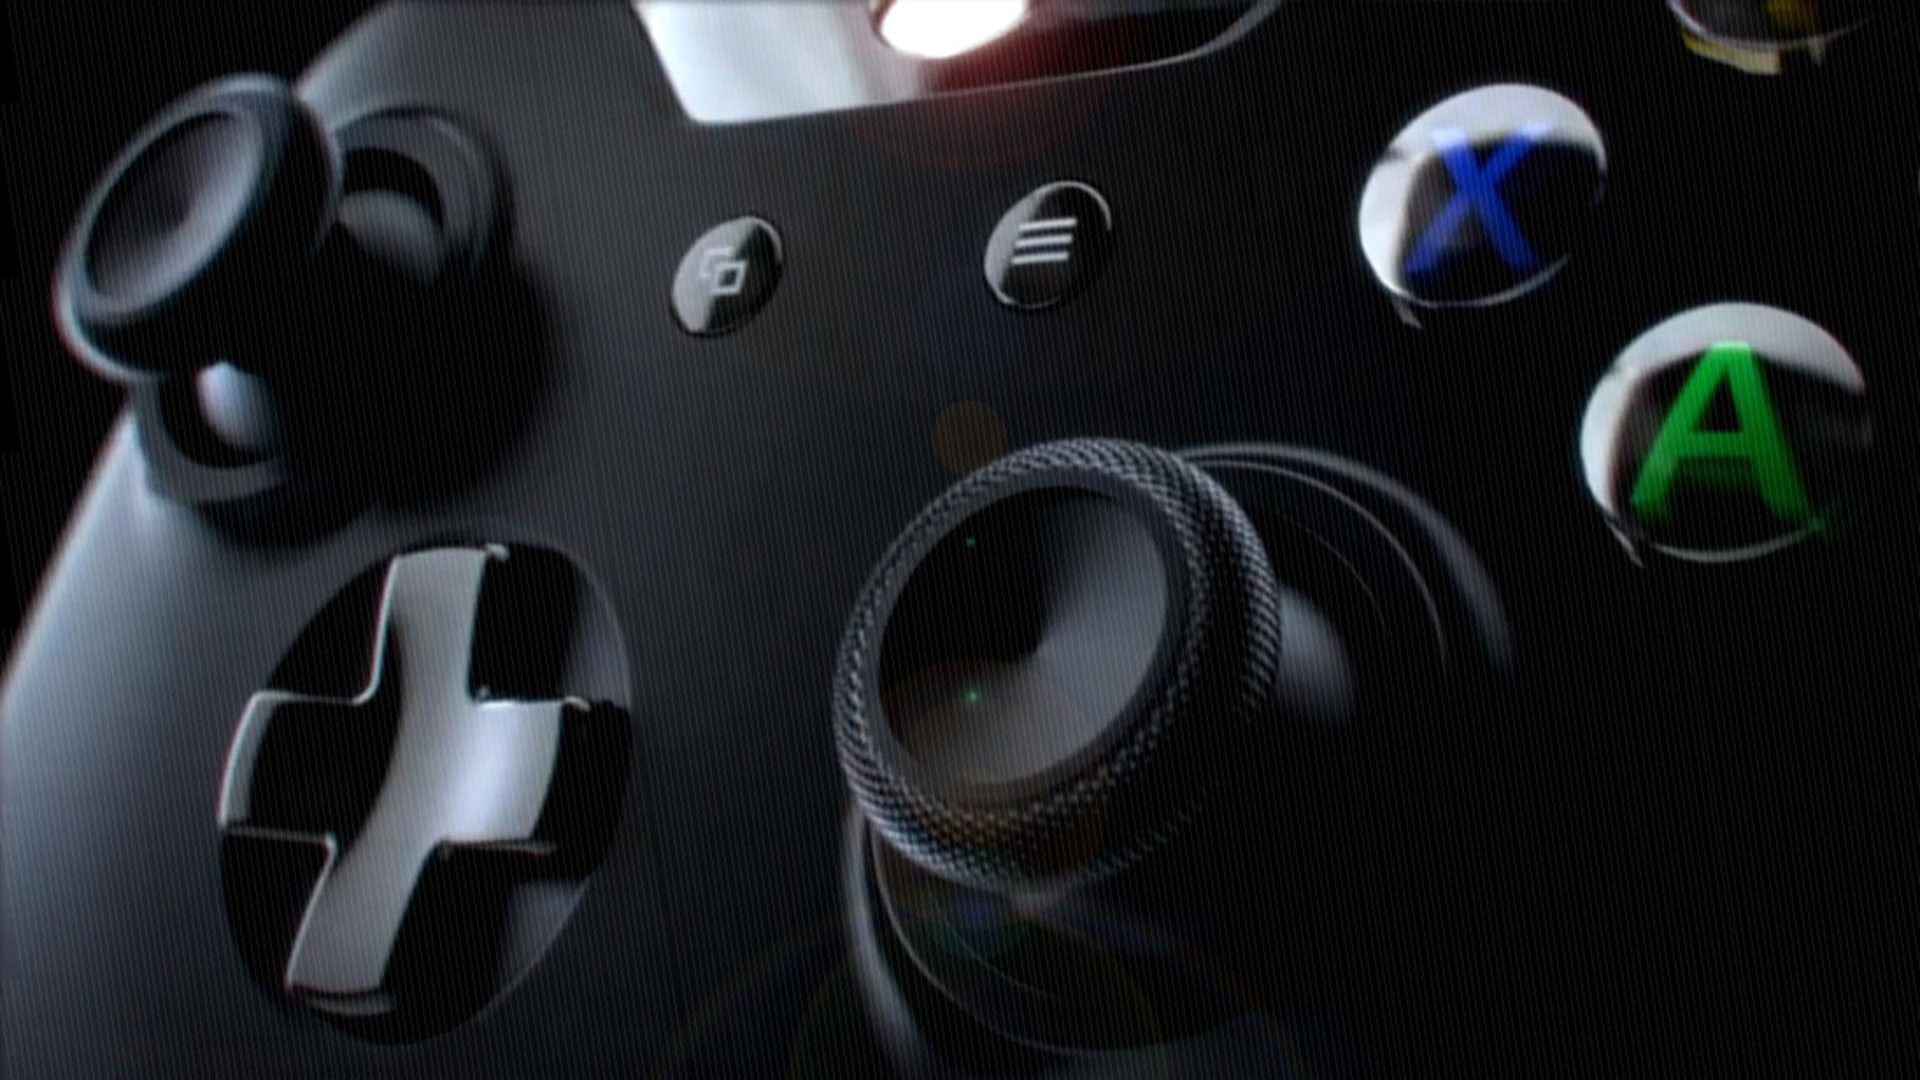 Res: 1920x1080, Gaming Controllers Wallpaper Wide